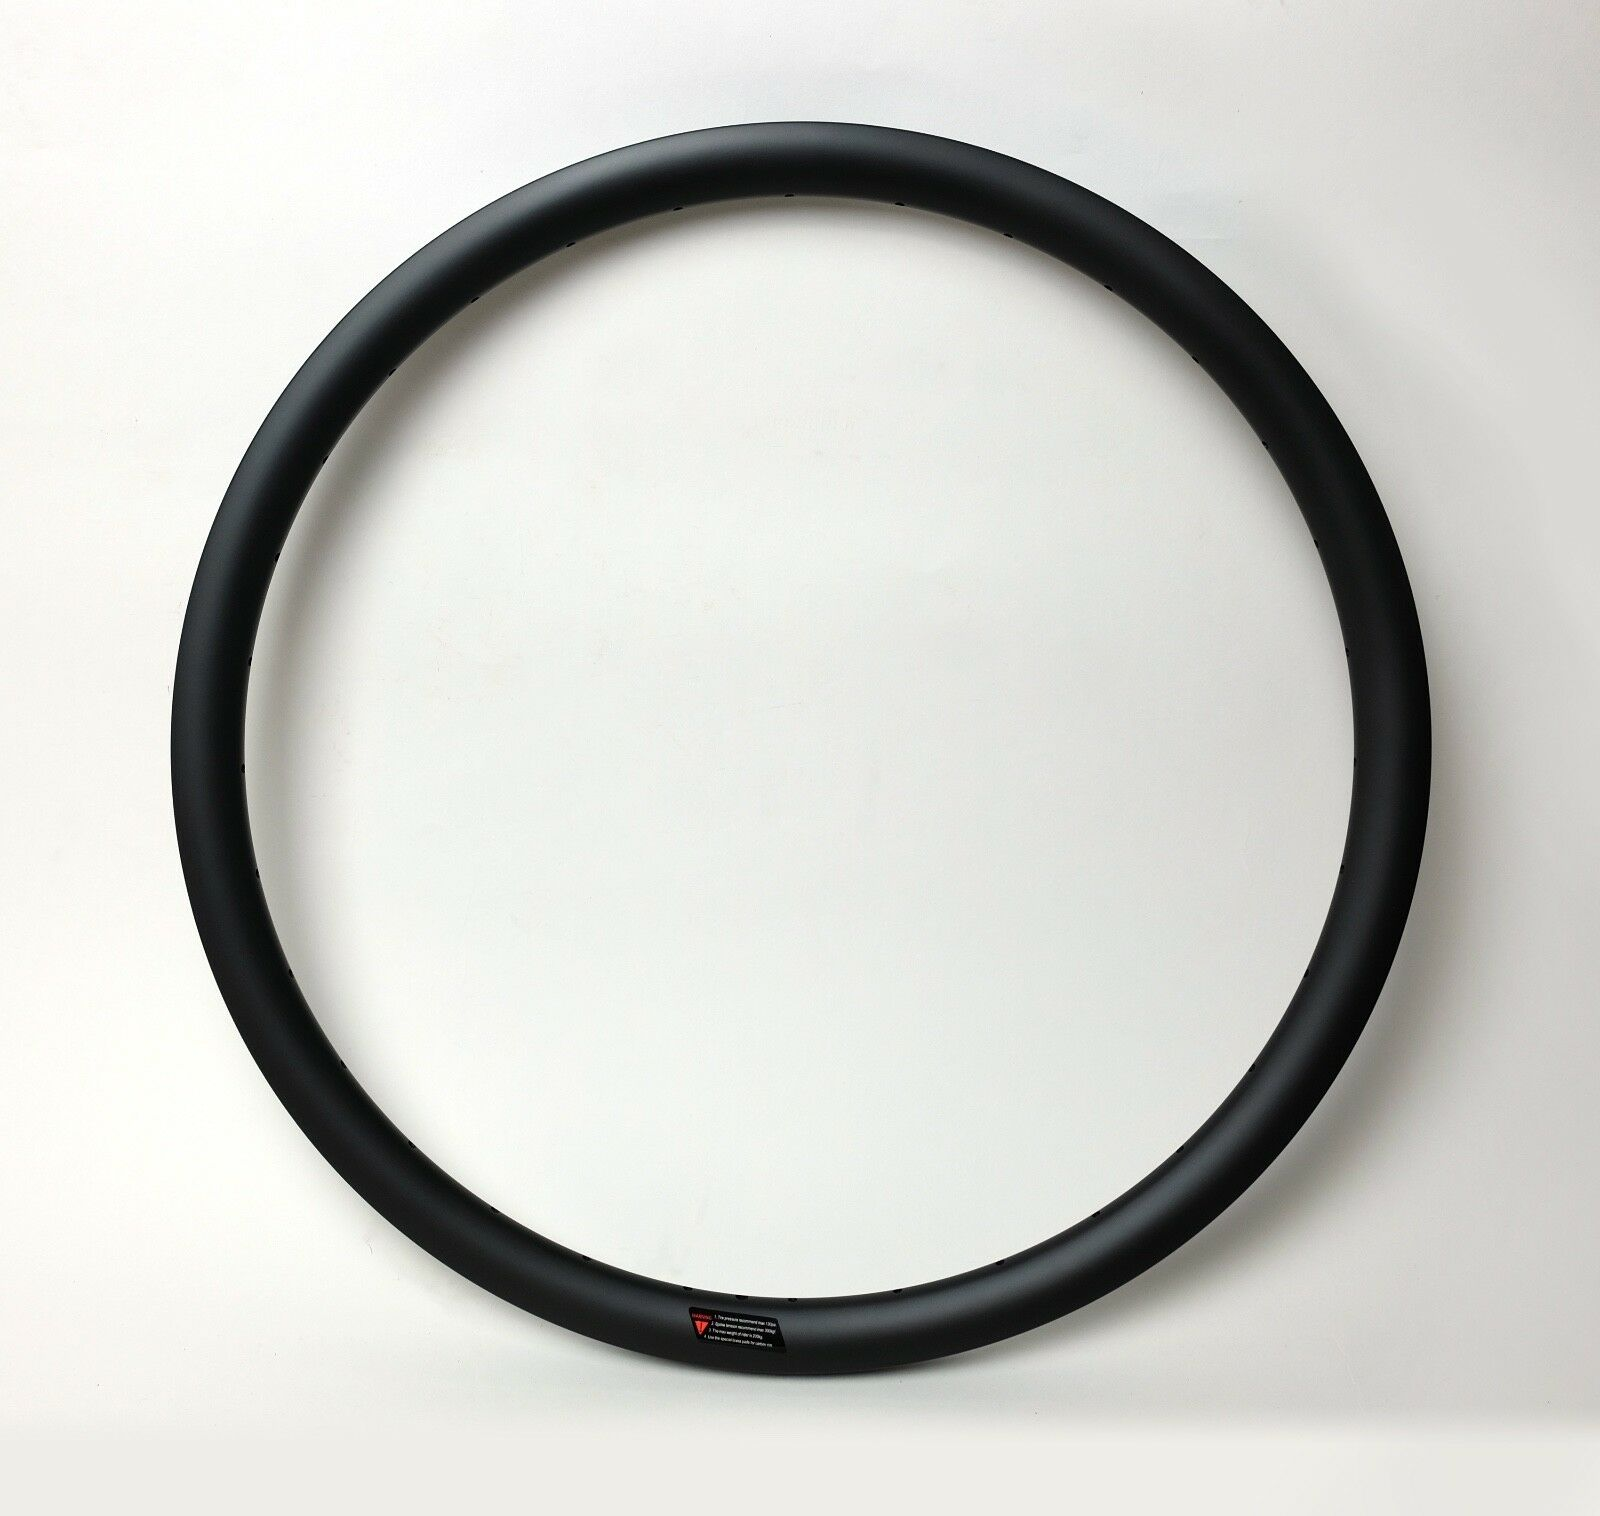 650b - 27.5  Carbon tubeless ready disc rim - 32mm - 32H - UK SELLER